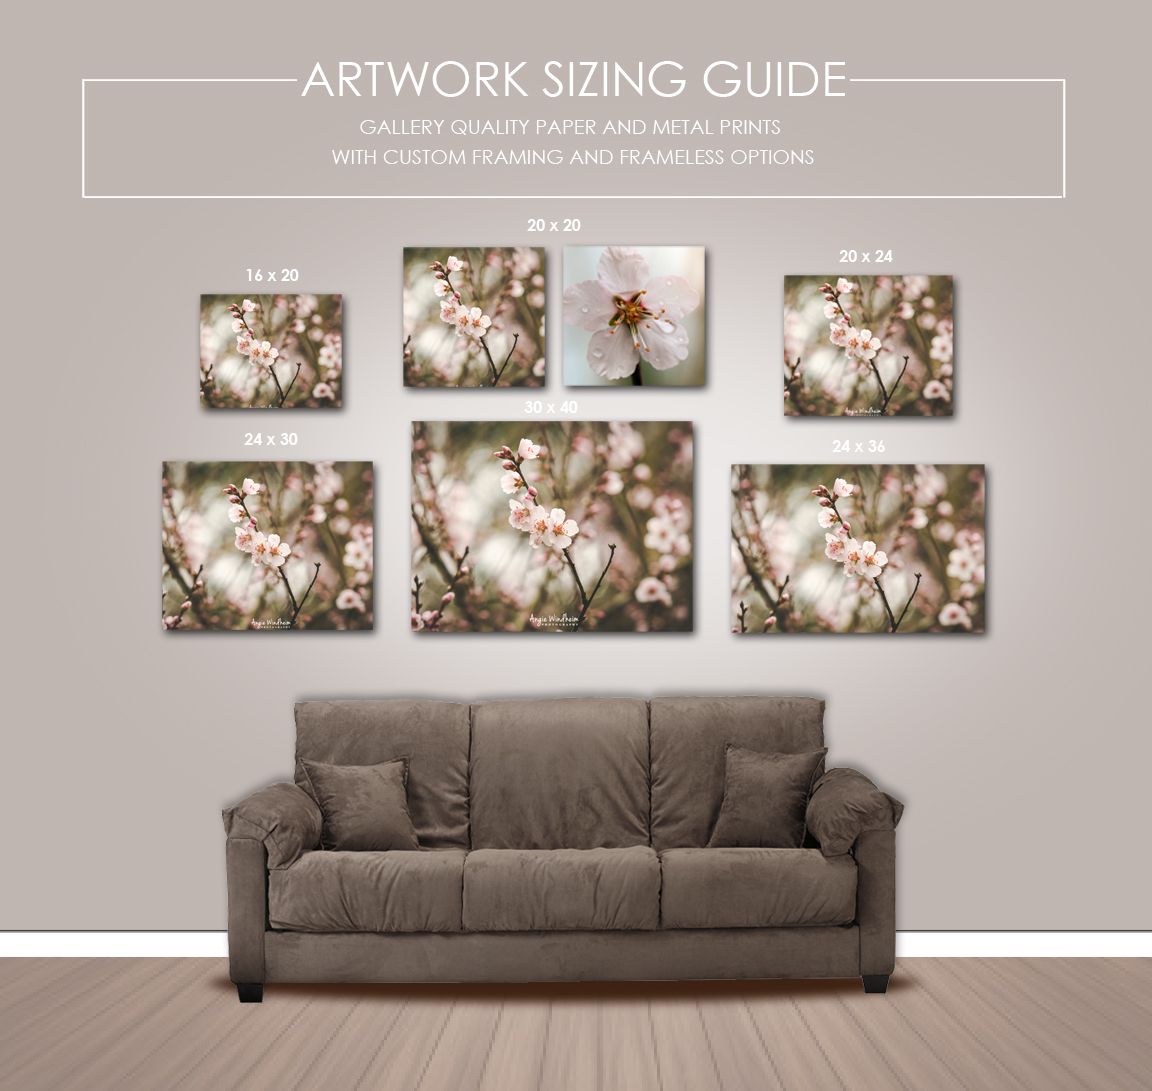 Artwork sizing guide for Angie Windheim Photography